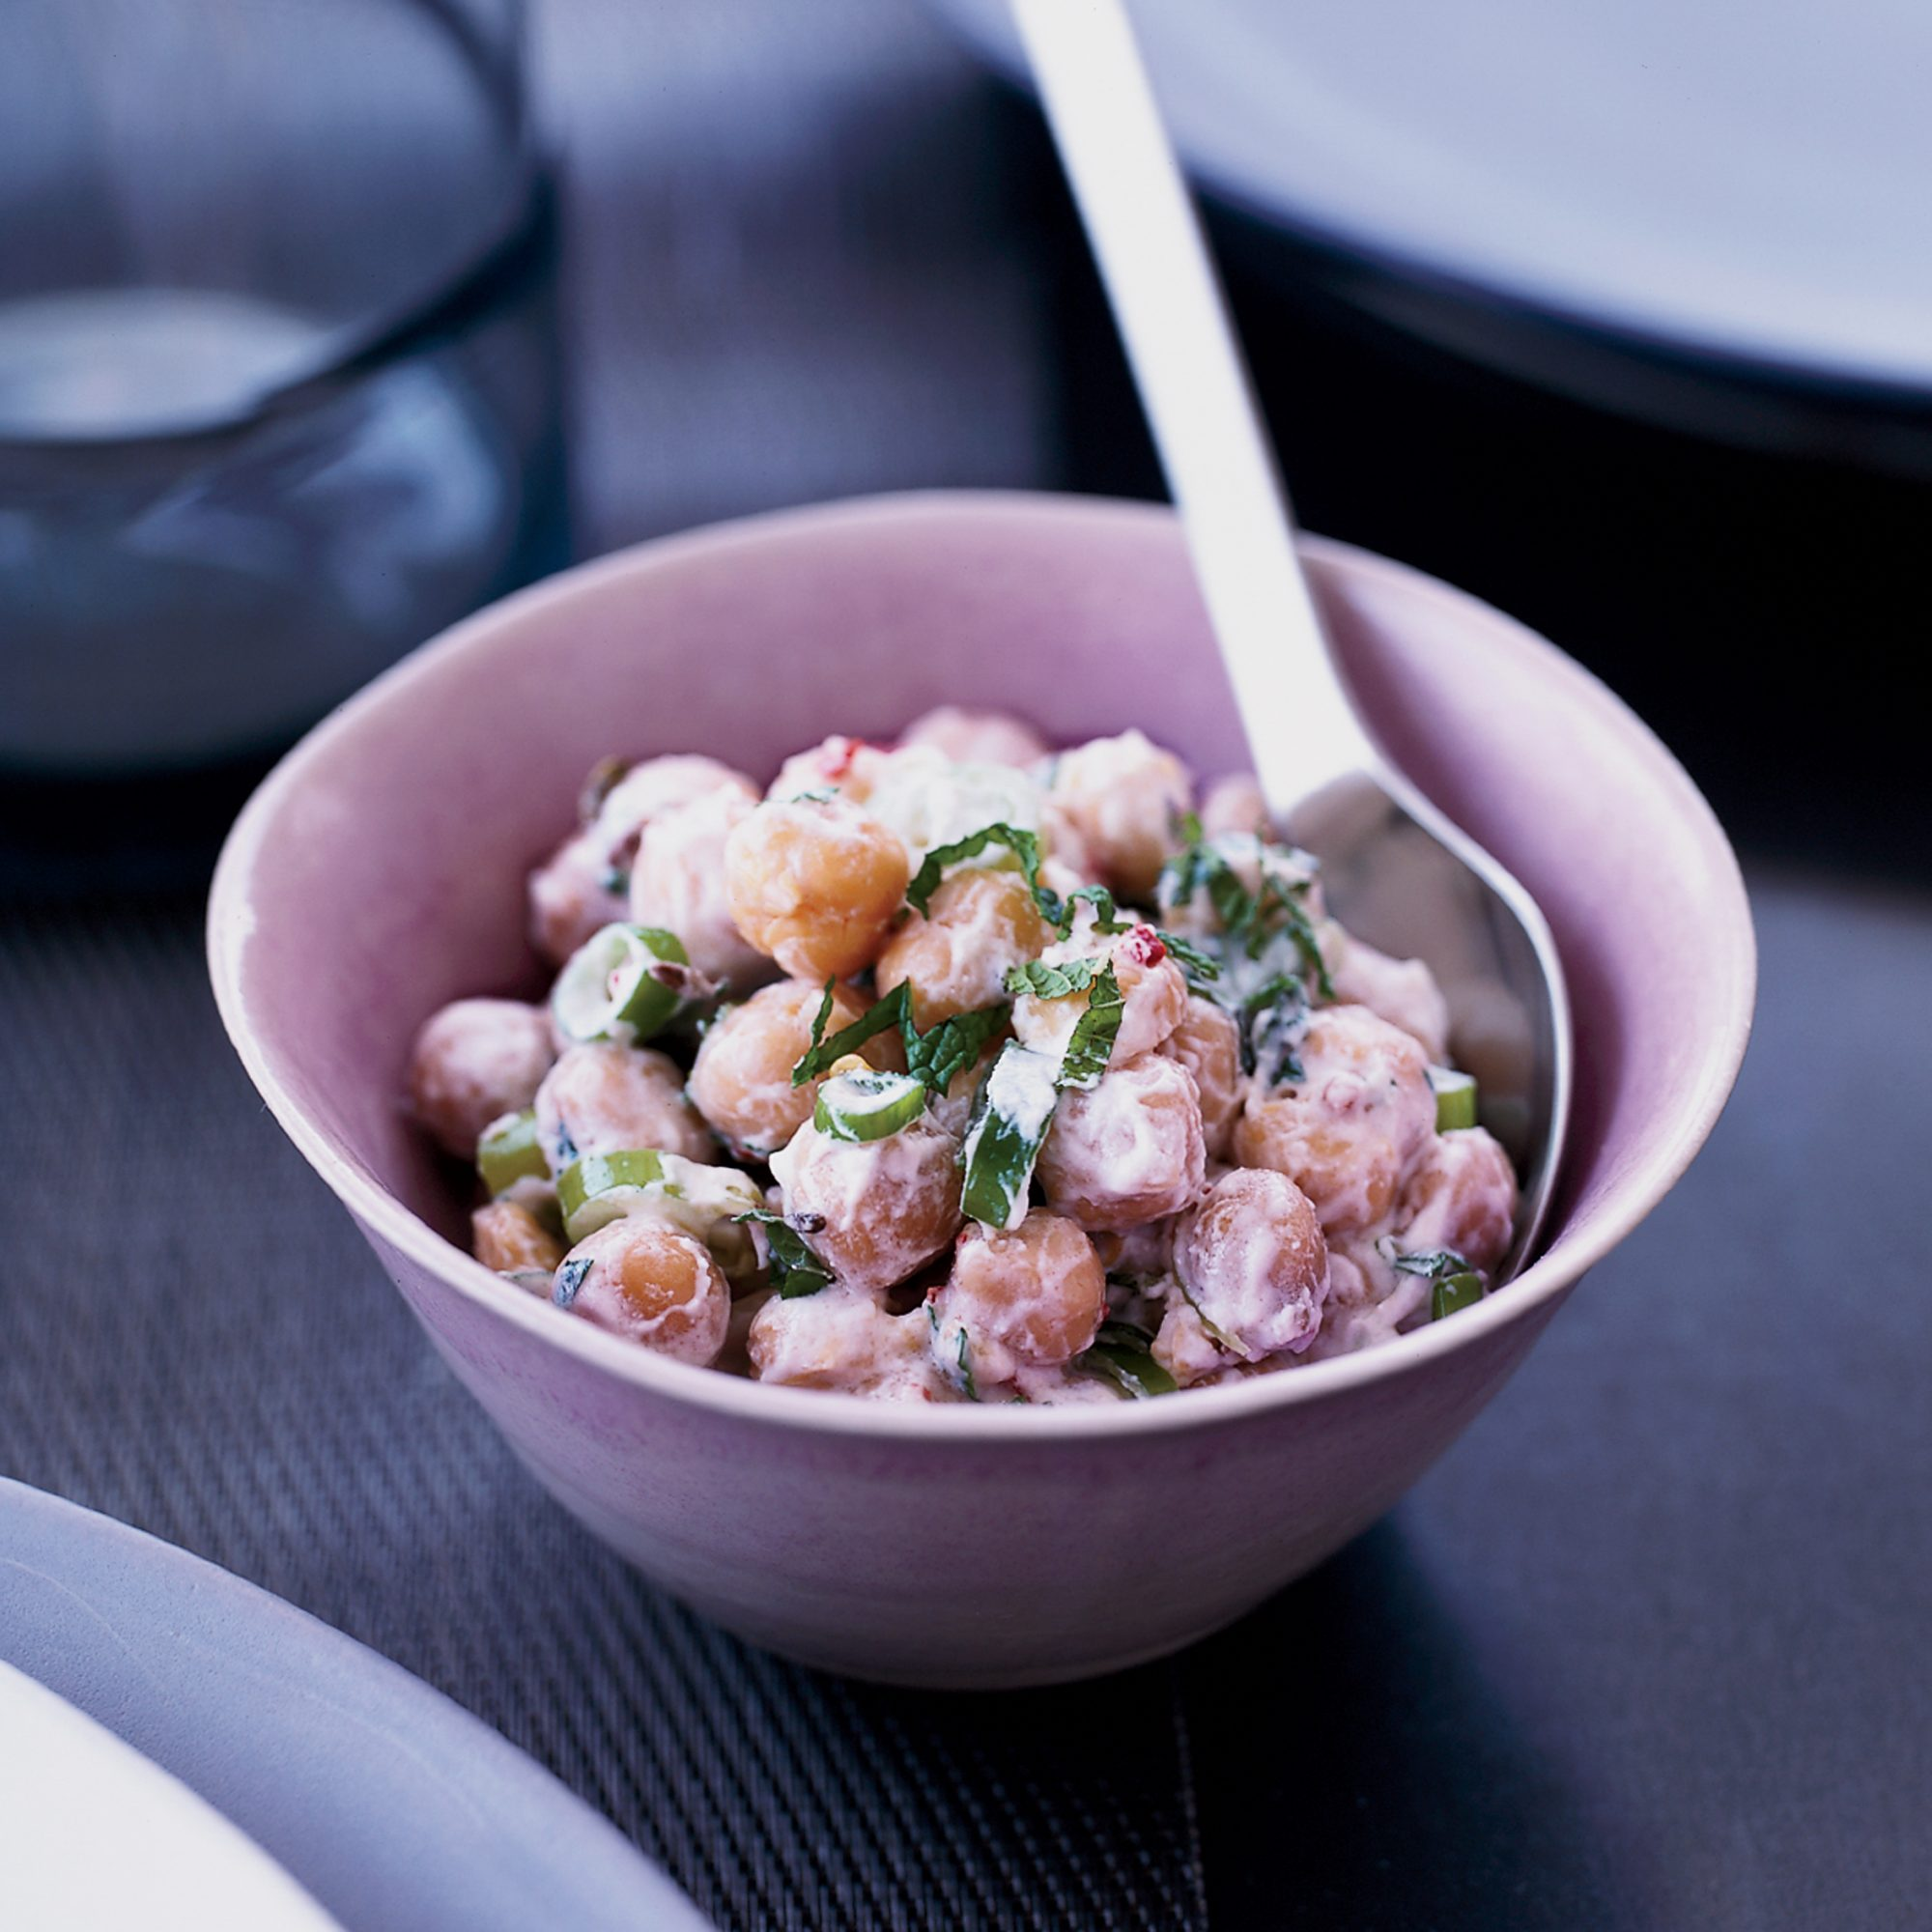 Indian-Spiced Chickpea Salad with Yogurt and Herbs